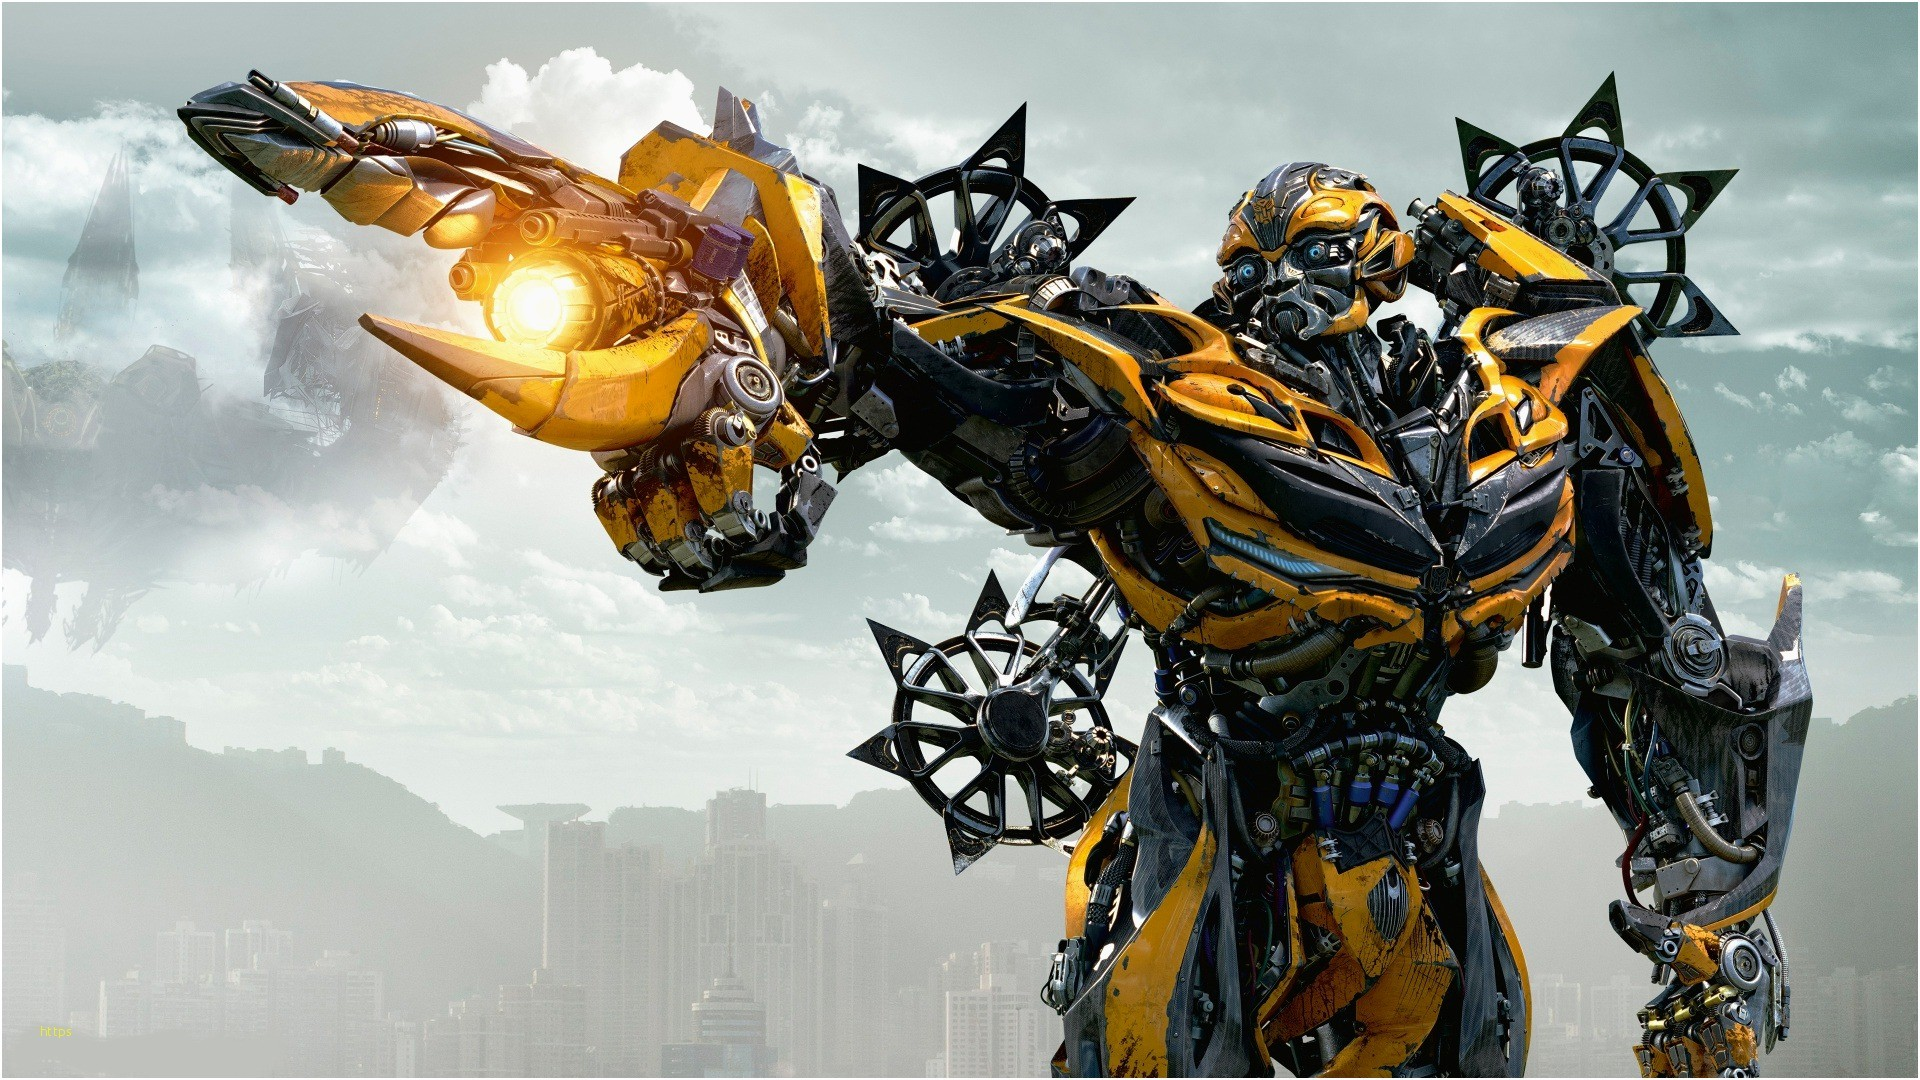 Res: 1920x1080, Transformers 4 Wallpaper Awesome Bumblebee 3d Autobots Transformers Hd  Wallpaper